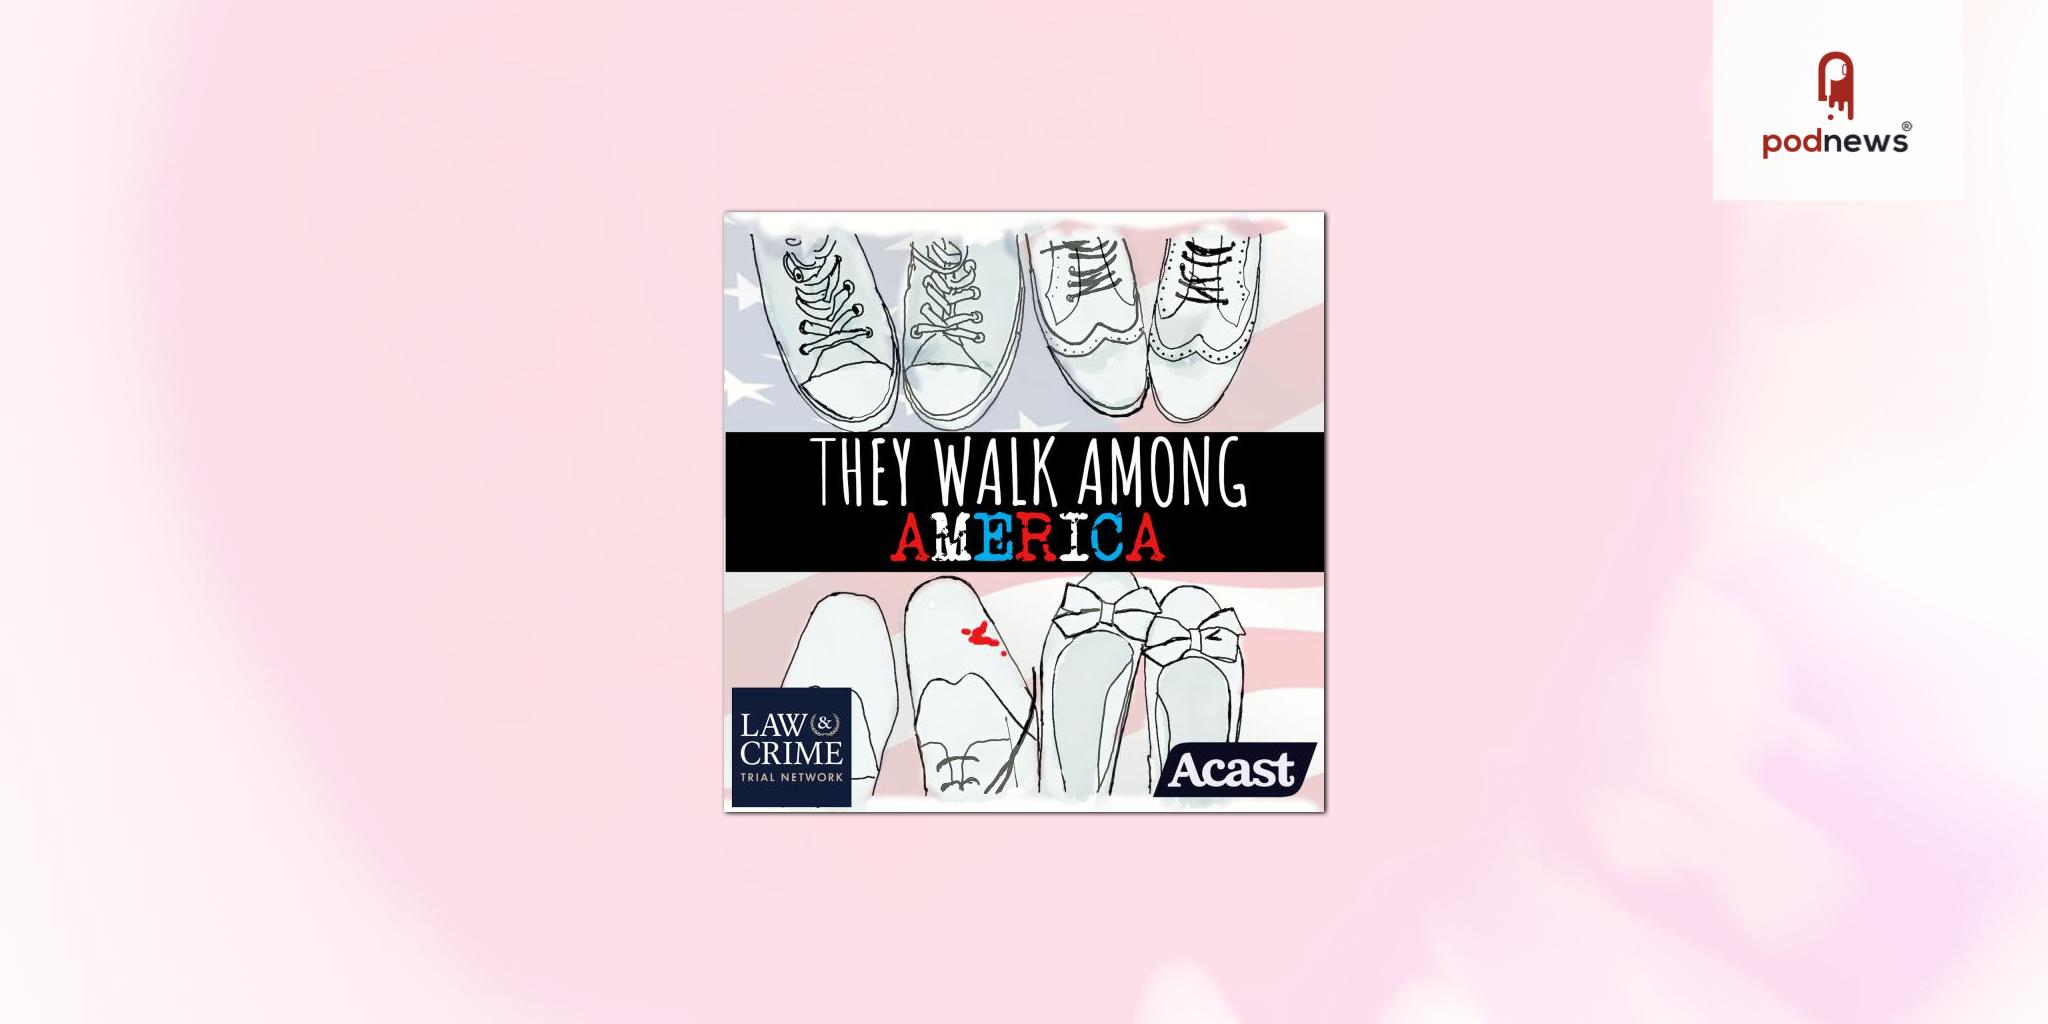 Award-winning true-crime podcast They Walk Among Us renews agreement with Acast and launches spin-off series